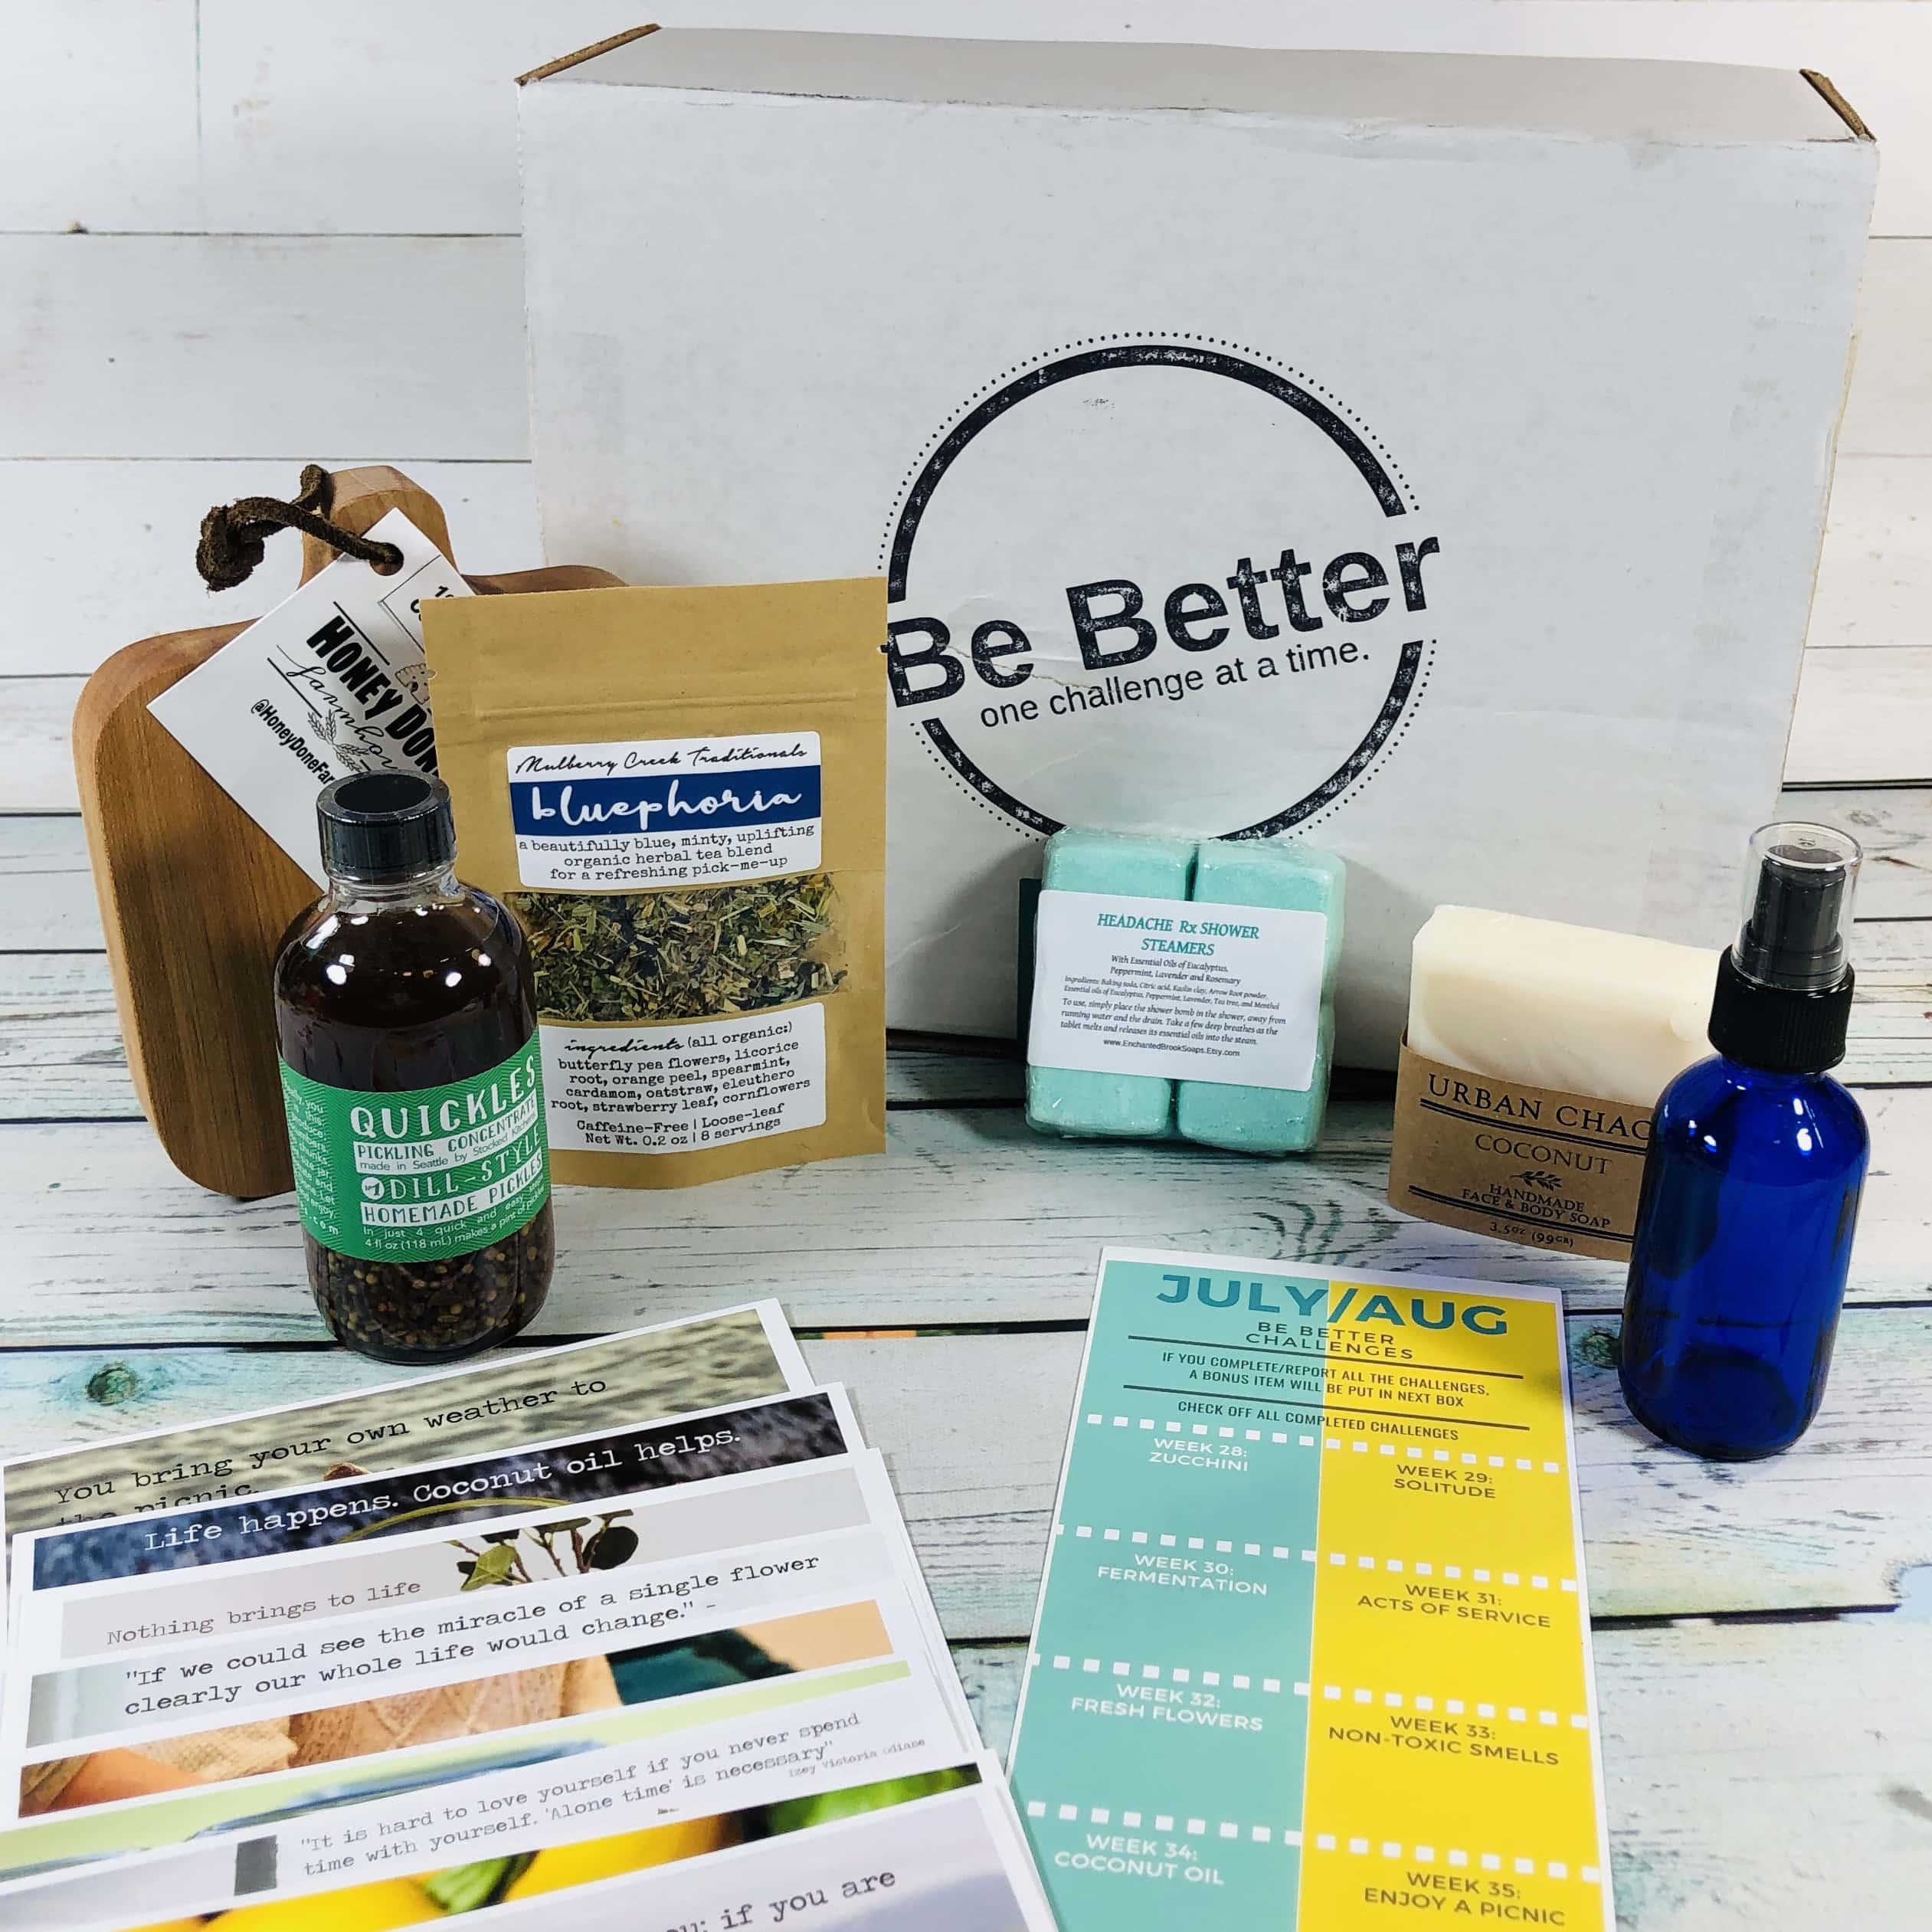 My Be Better Box July-August 2019 Subscription Box Review